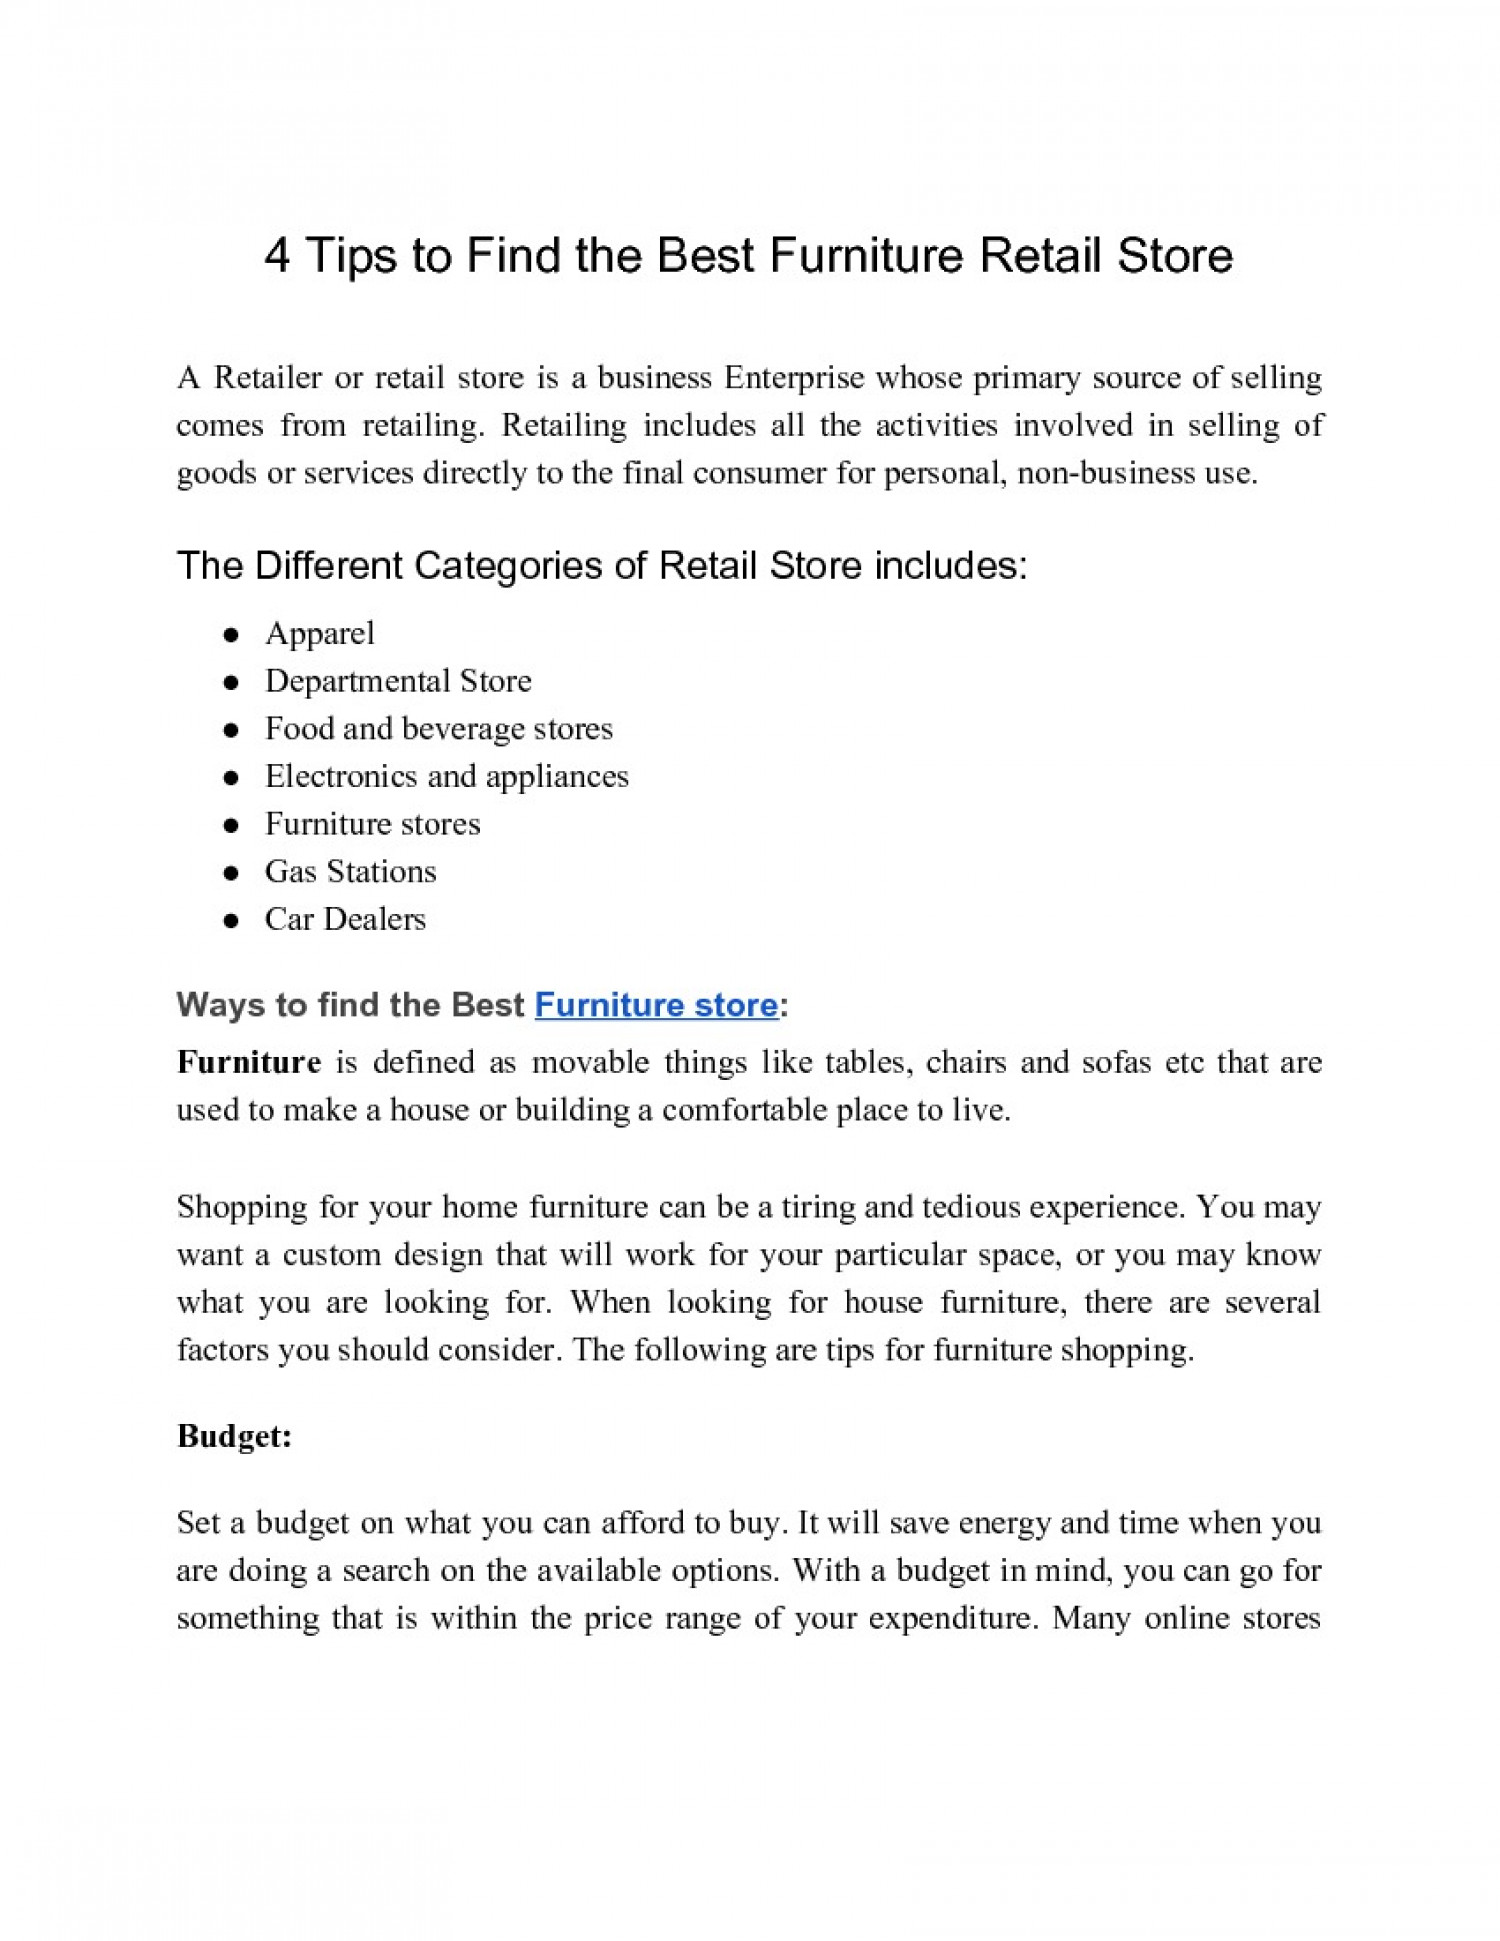 4 Tips to Find the Best Furniture Retail Store Infographic